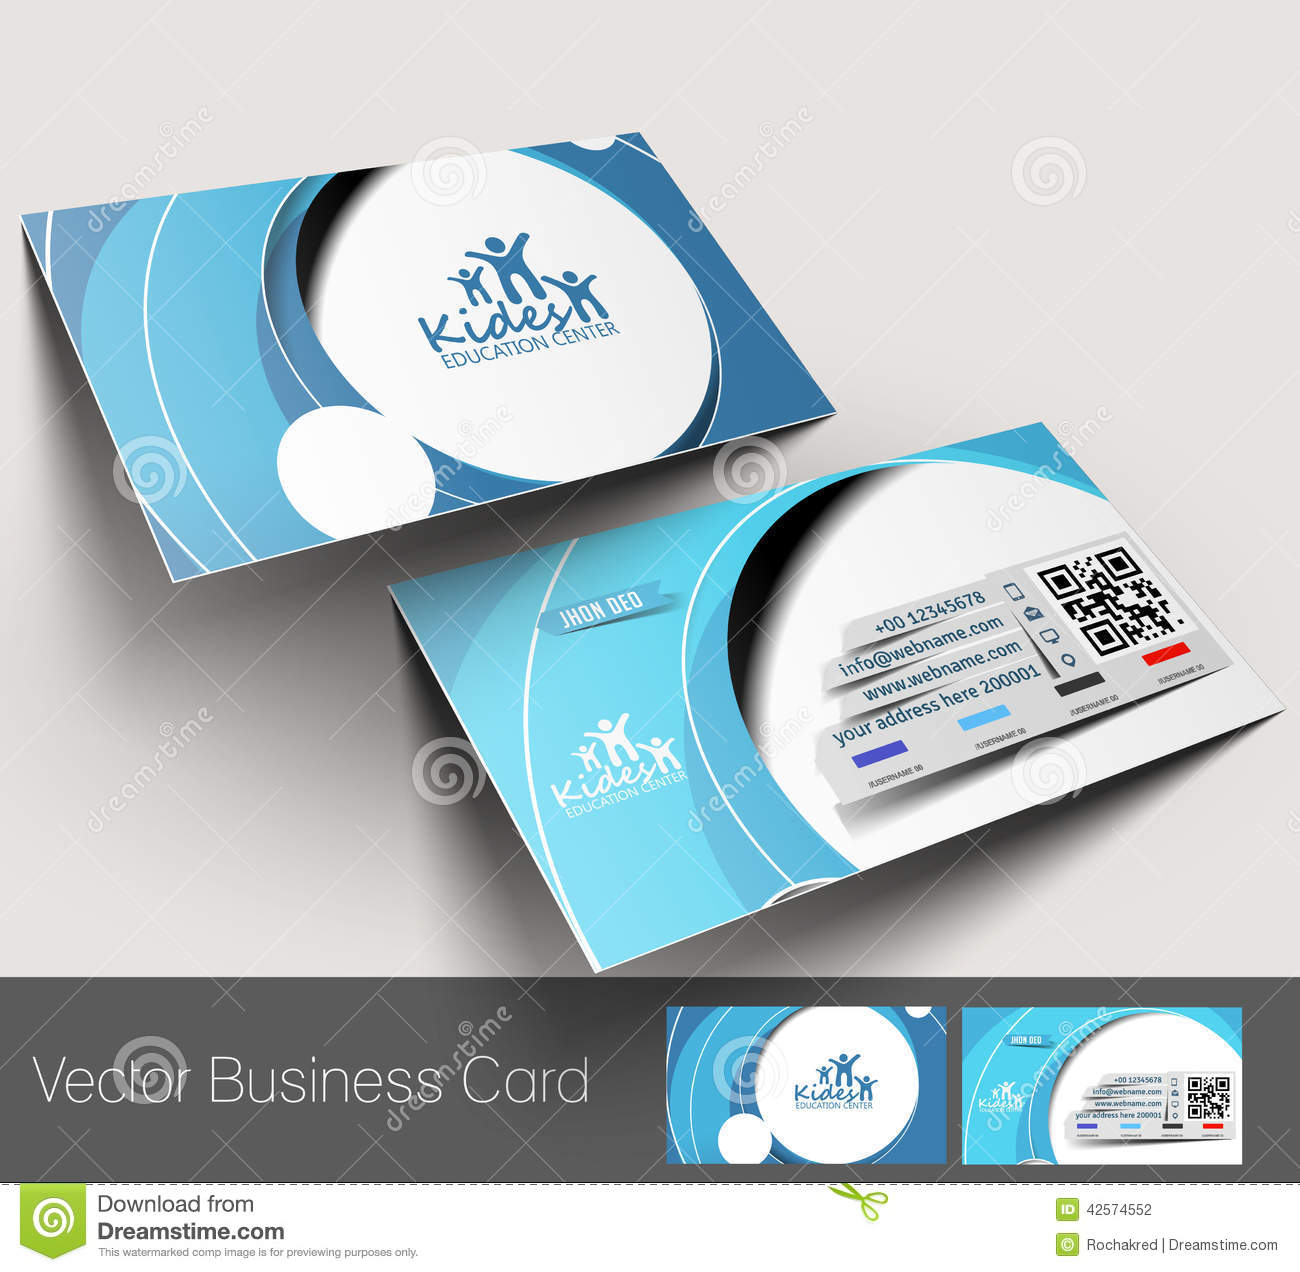 Education Center Business Card Stock Vector - Image: 42574552